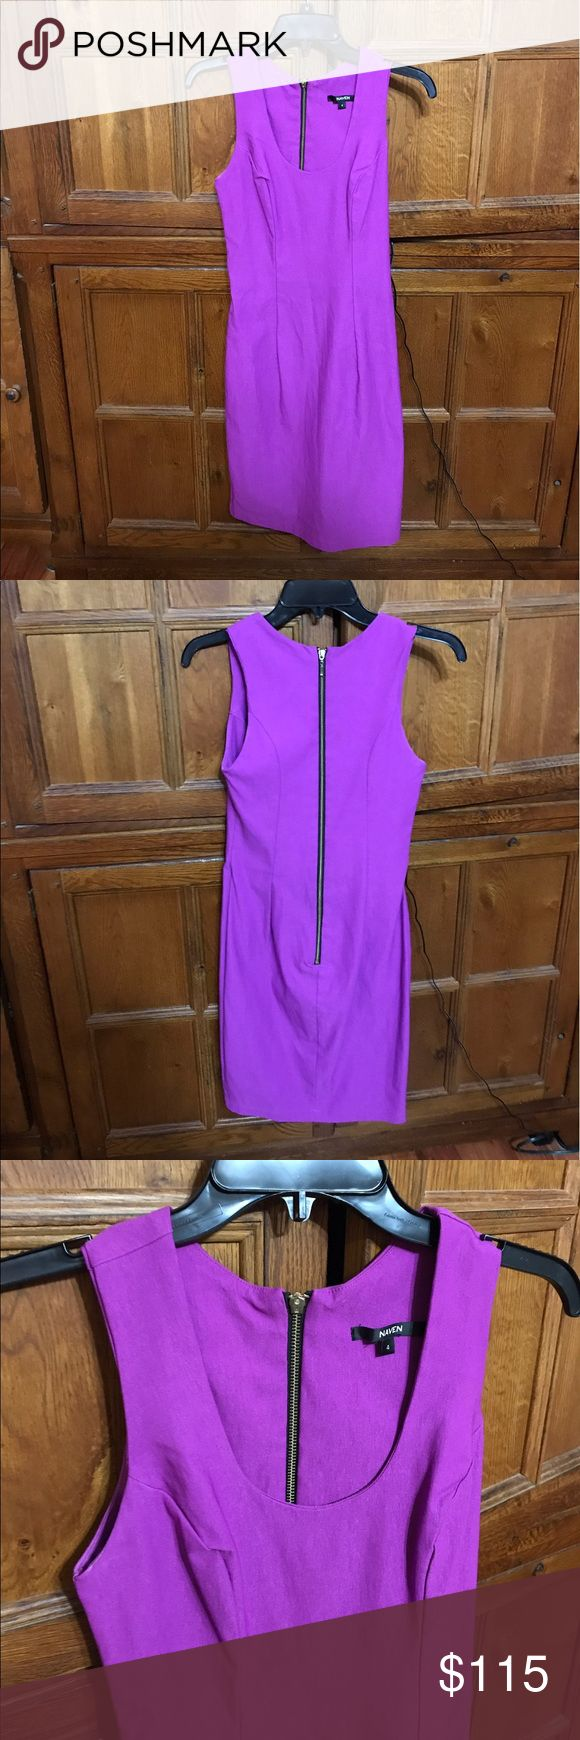 Naven size 4 purple dress Naven size 4 purple dress in excellent used condition. No stains, holes or rips. Measurements are posted. Pit to pit is pic 6, length is pic 7 and zipper length is pic 8. The color is purple. My measurement pics look pink but the dress is PURPLE. 💁🏼wear this dress to a wedding, graduation or on a fun night out and all eyes will be on you!! Bundle to save! Naven Dresses